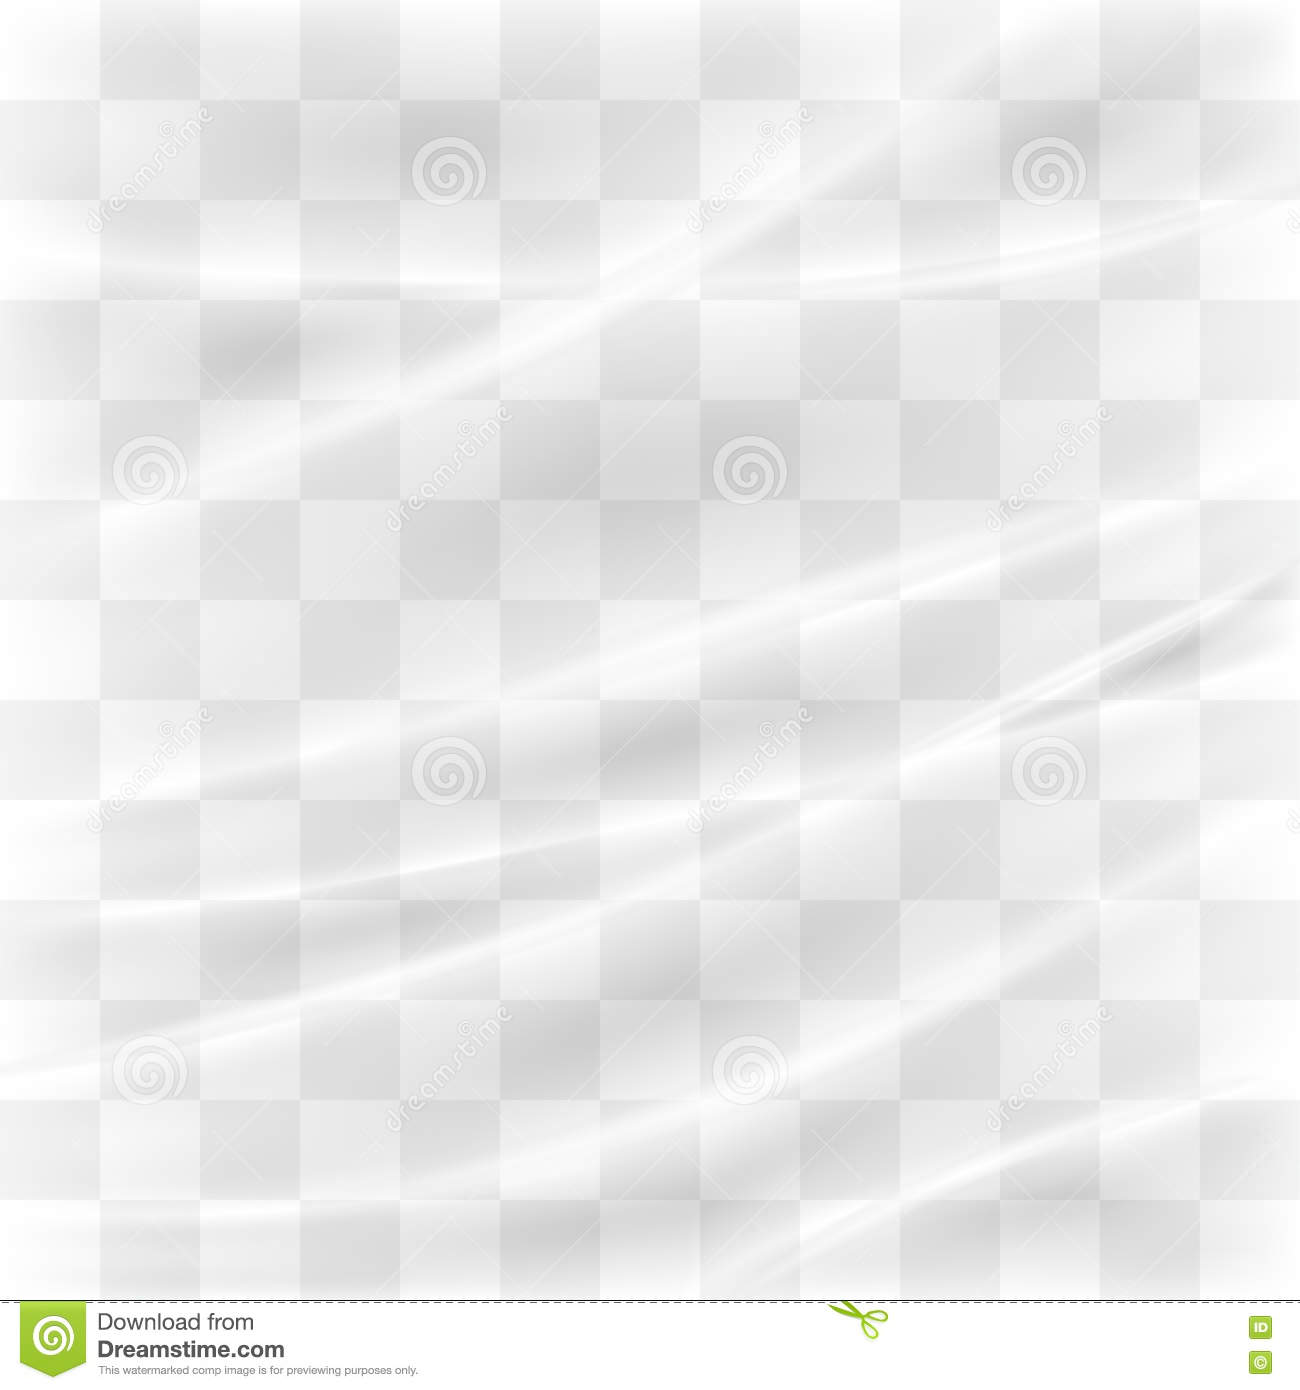 Transparent plastic warp stock vector. Illustration of